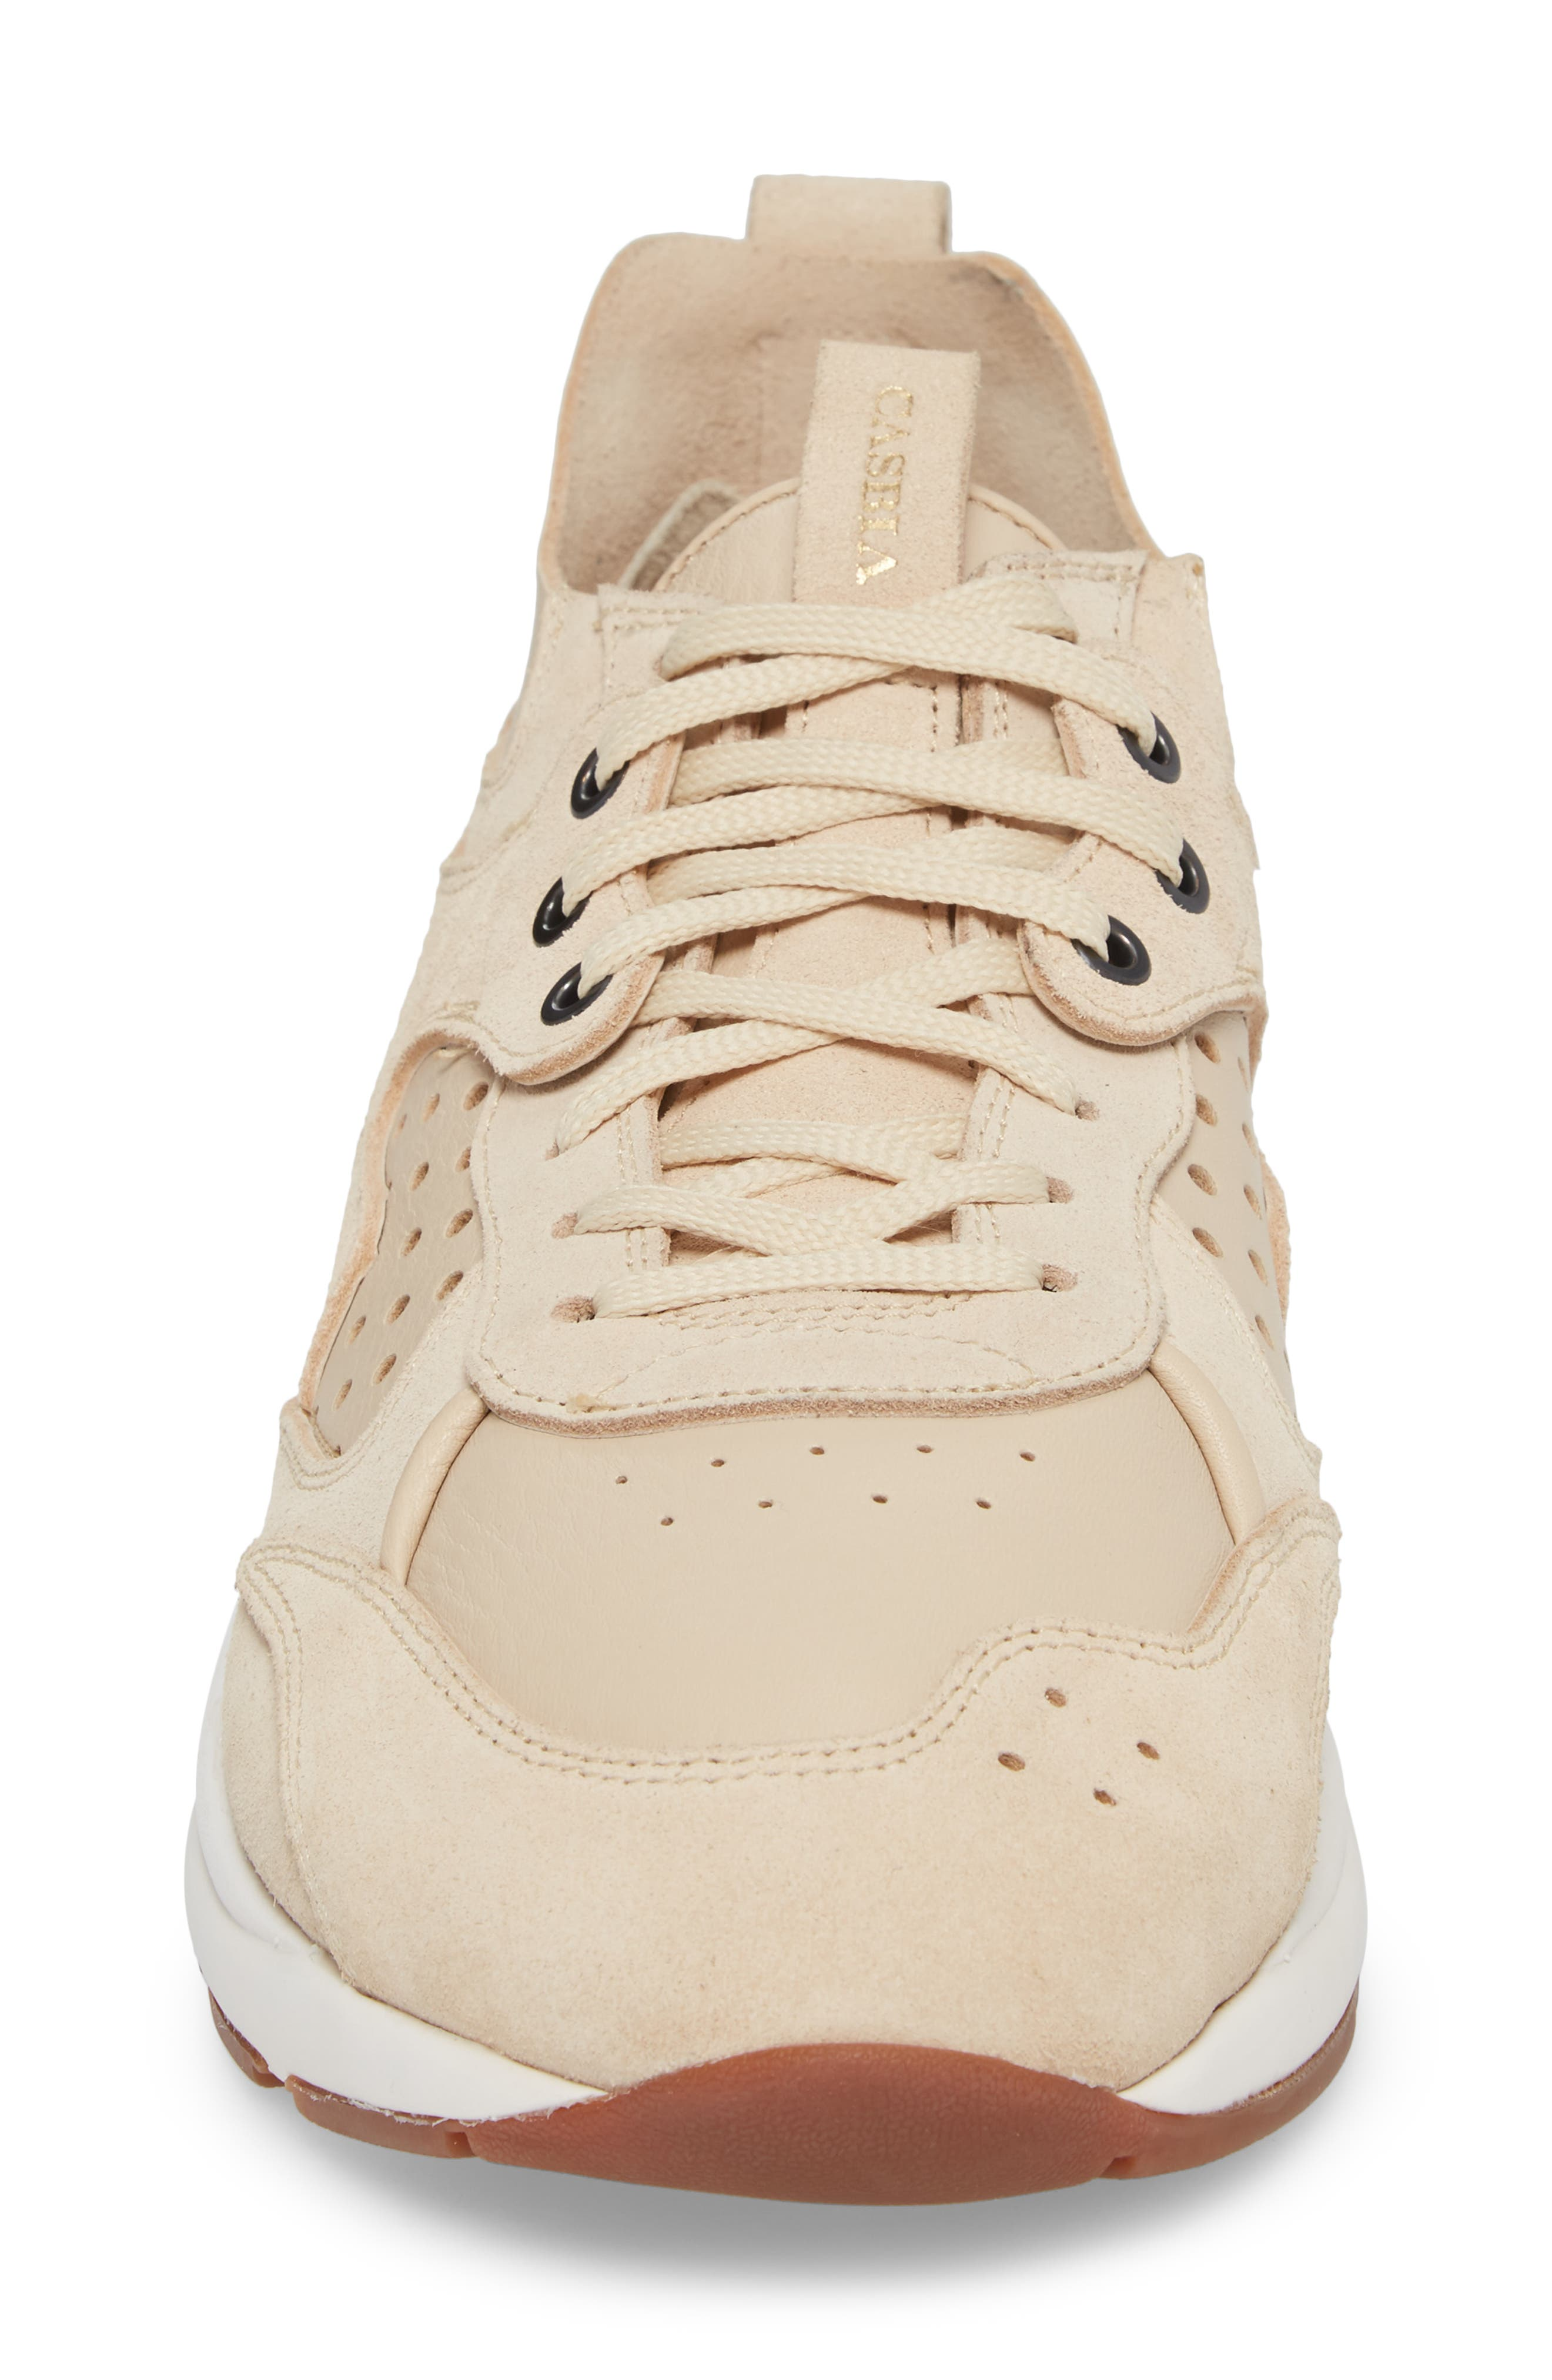 Champion Veloce Sneaker,                             Alternate thumbnail 4, color,                             Beige Suede